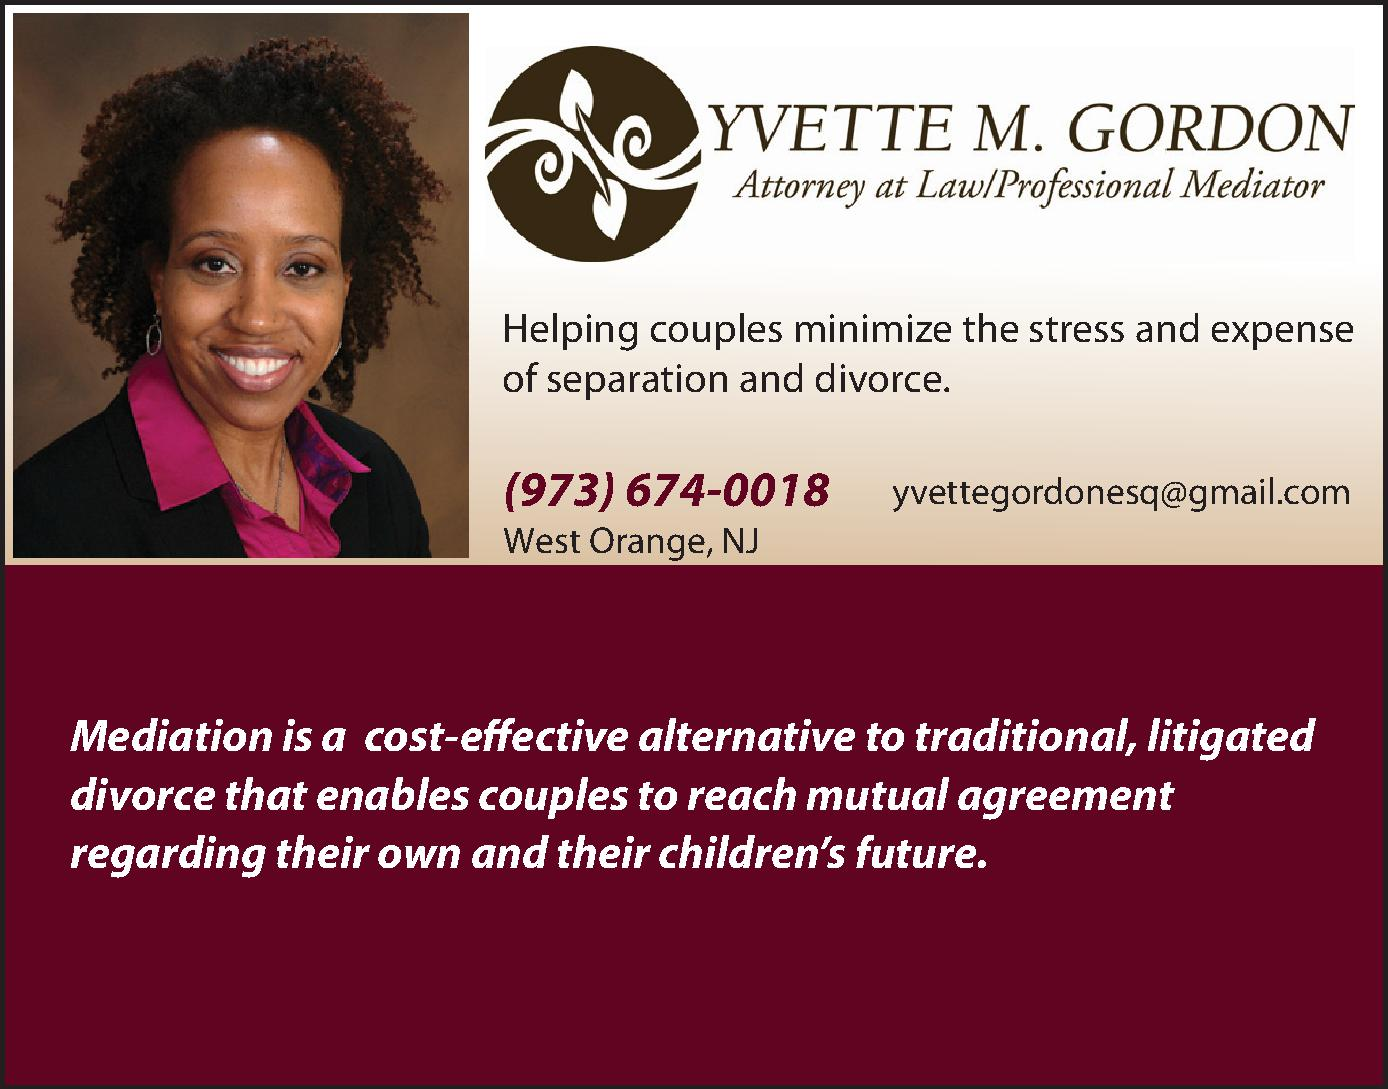 Yvette M. Gordon, Esq., Professional Mediator